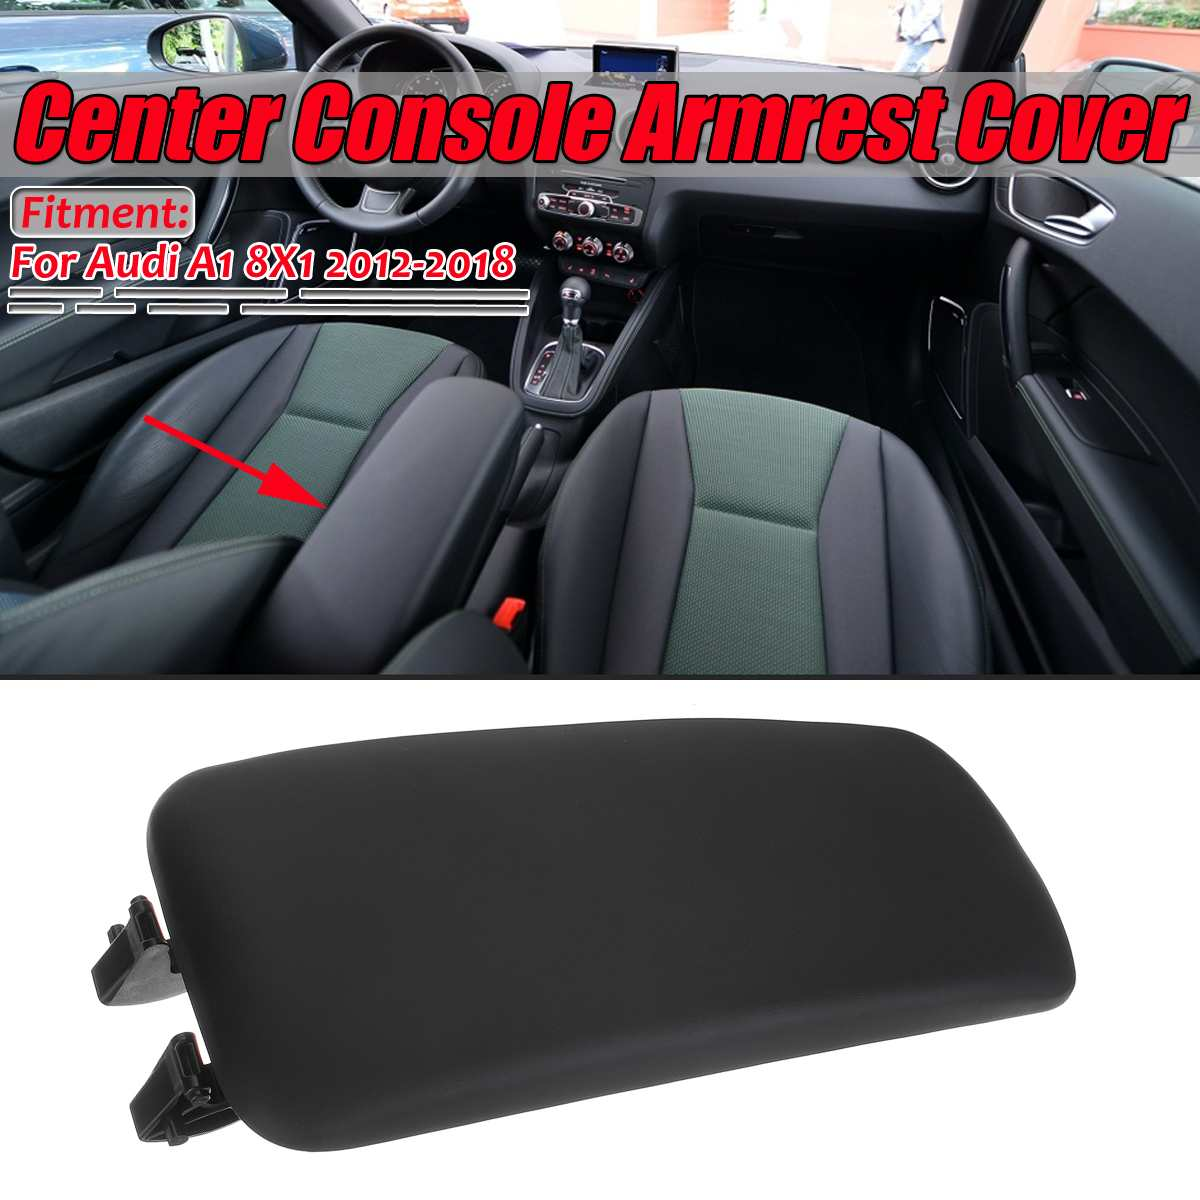 Black A1 Car Center Console Armrest Cover Upper Part Cover Trim For Vehicle Cover Lid For Audi A1 8X1 2012-2018 8X0864245BFH4